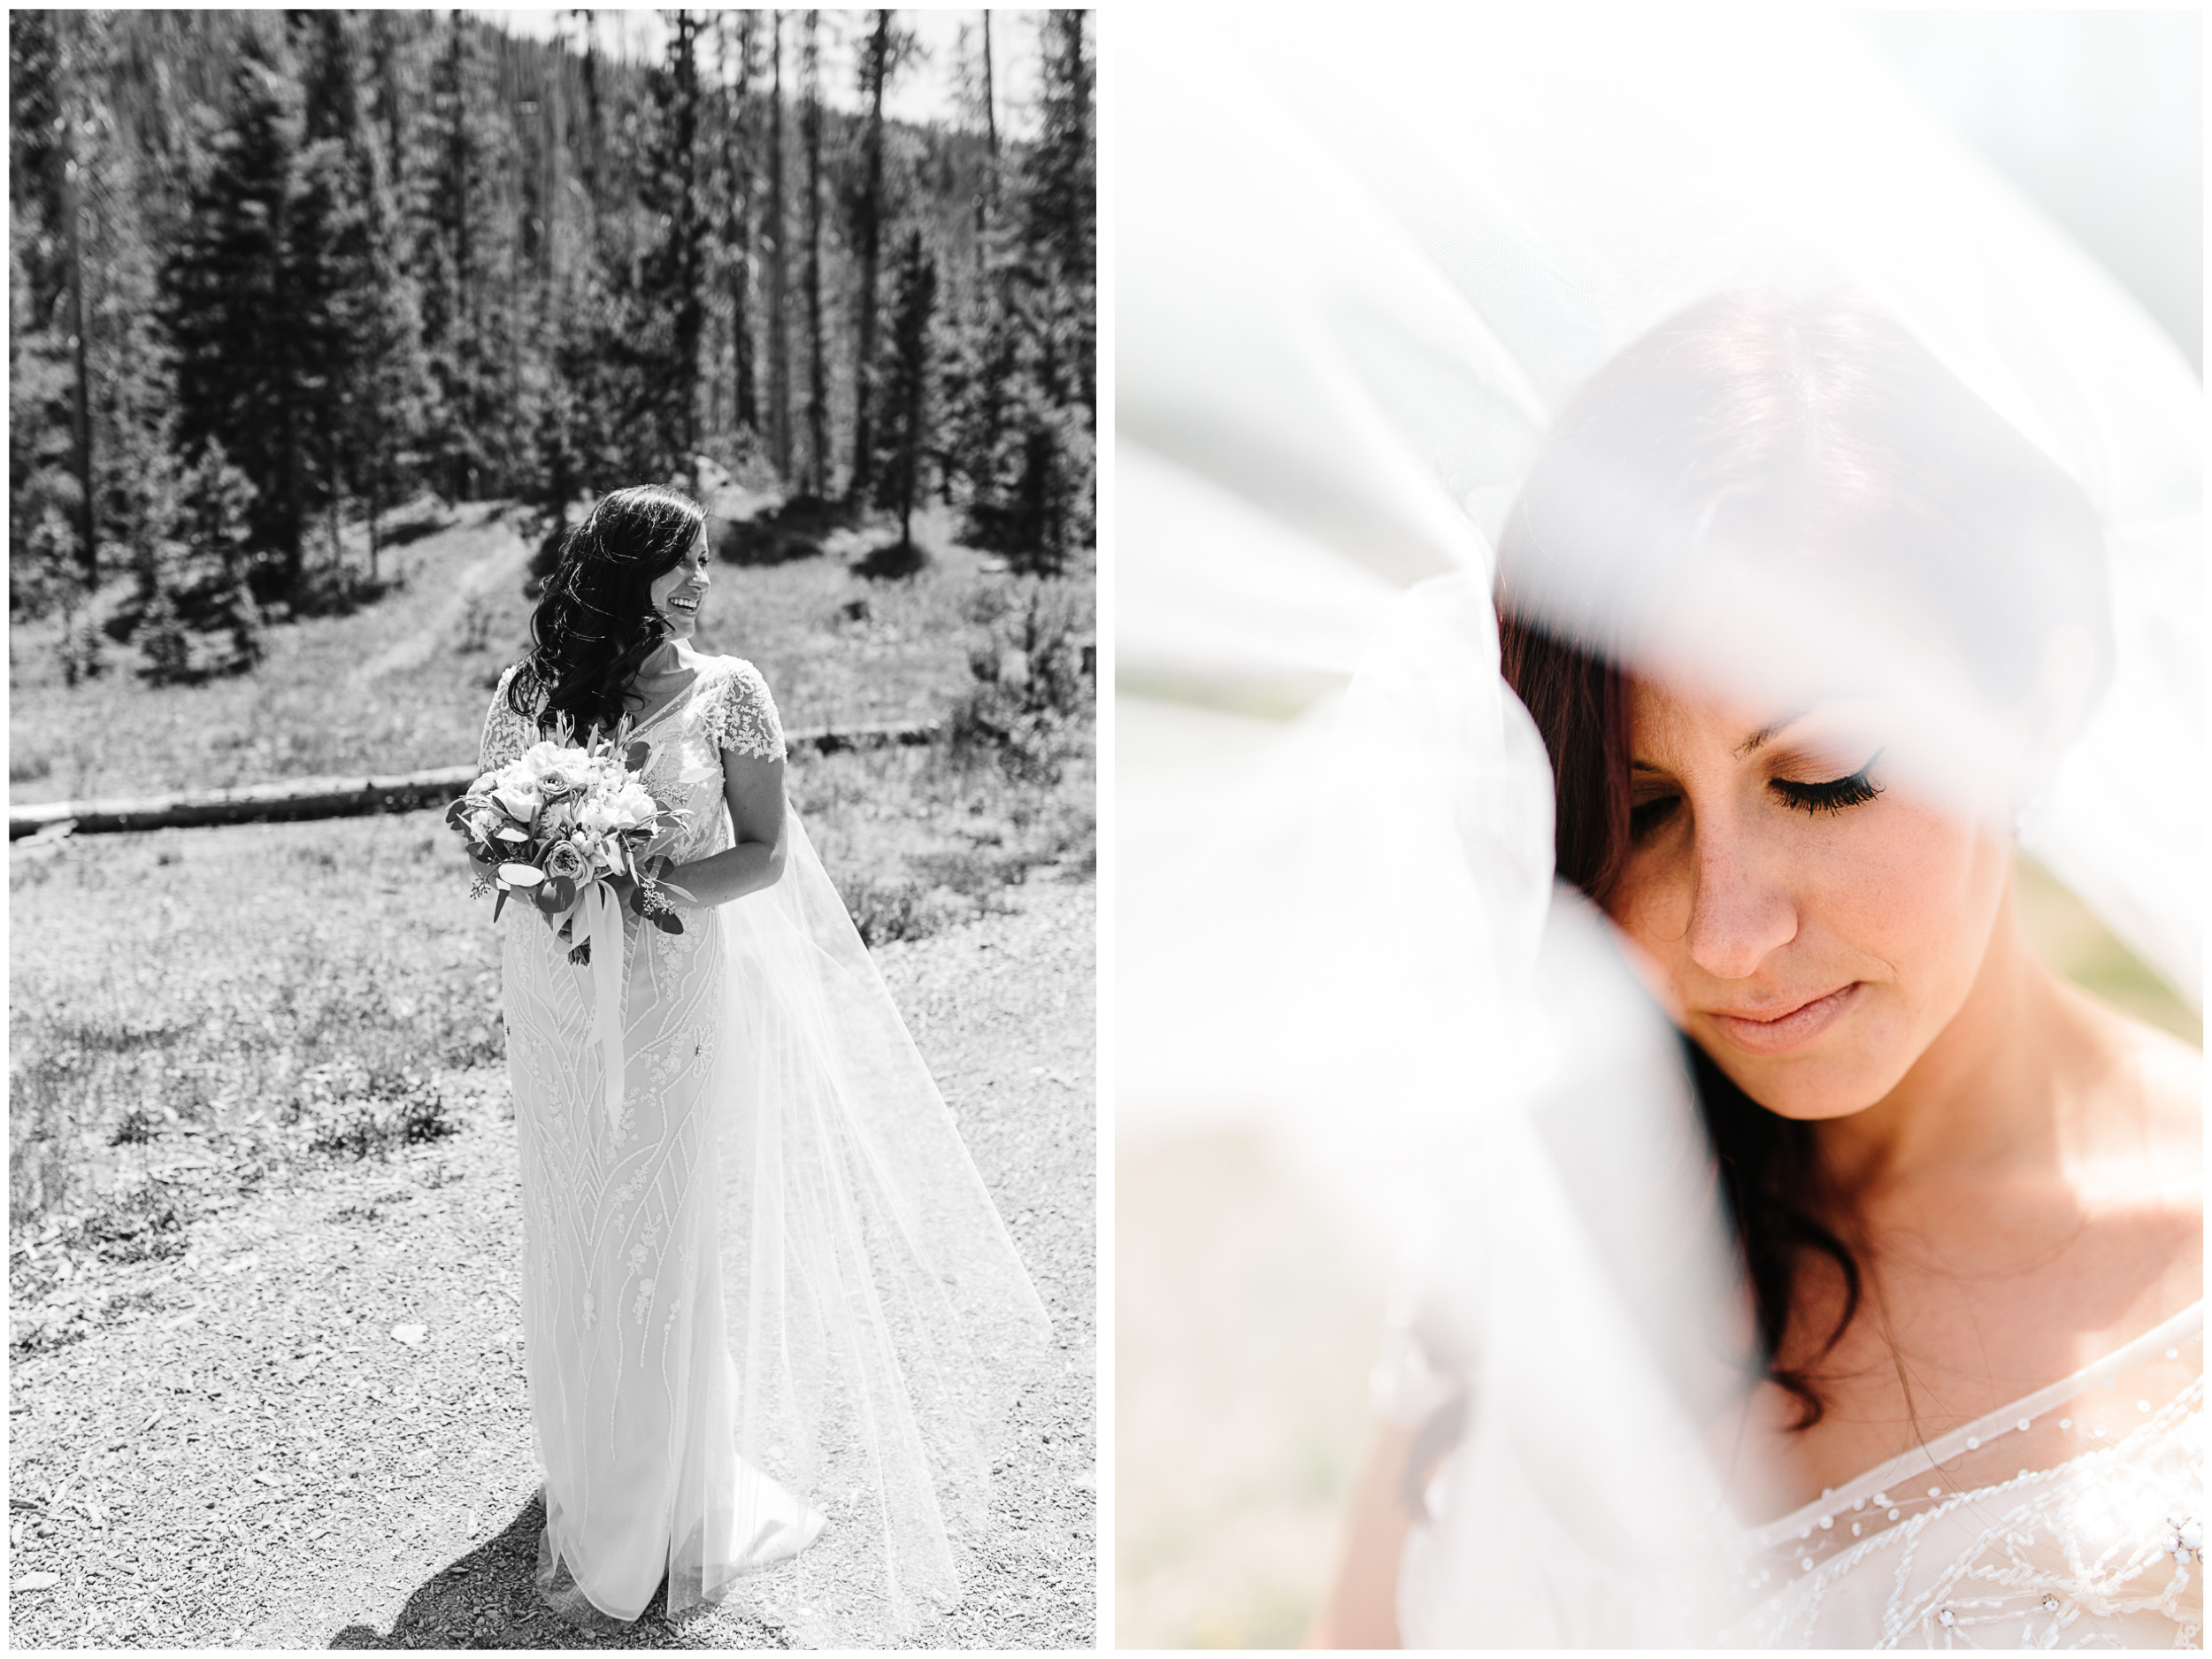 rocky_mountain_wedding_19b.jpg